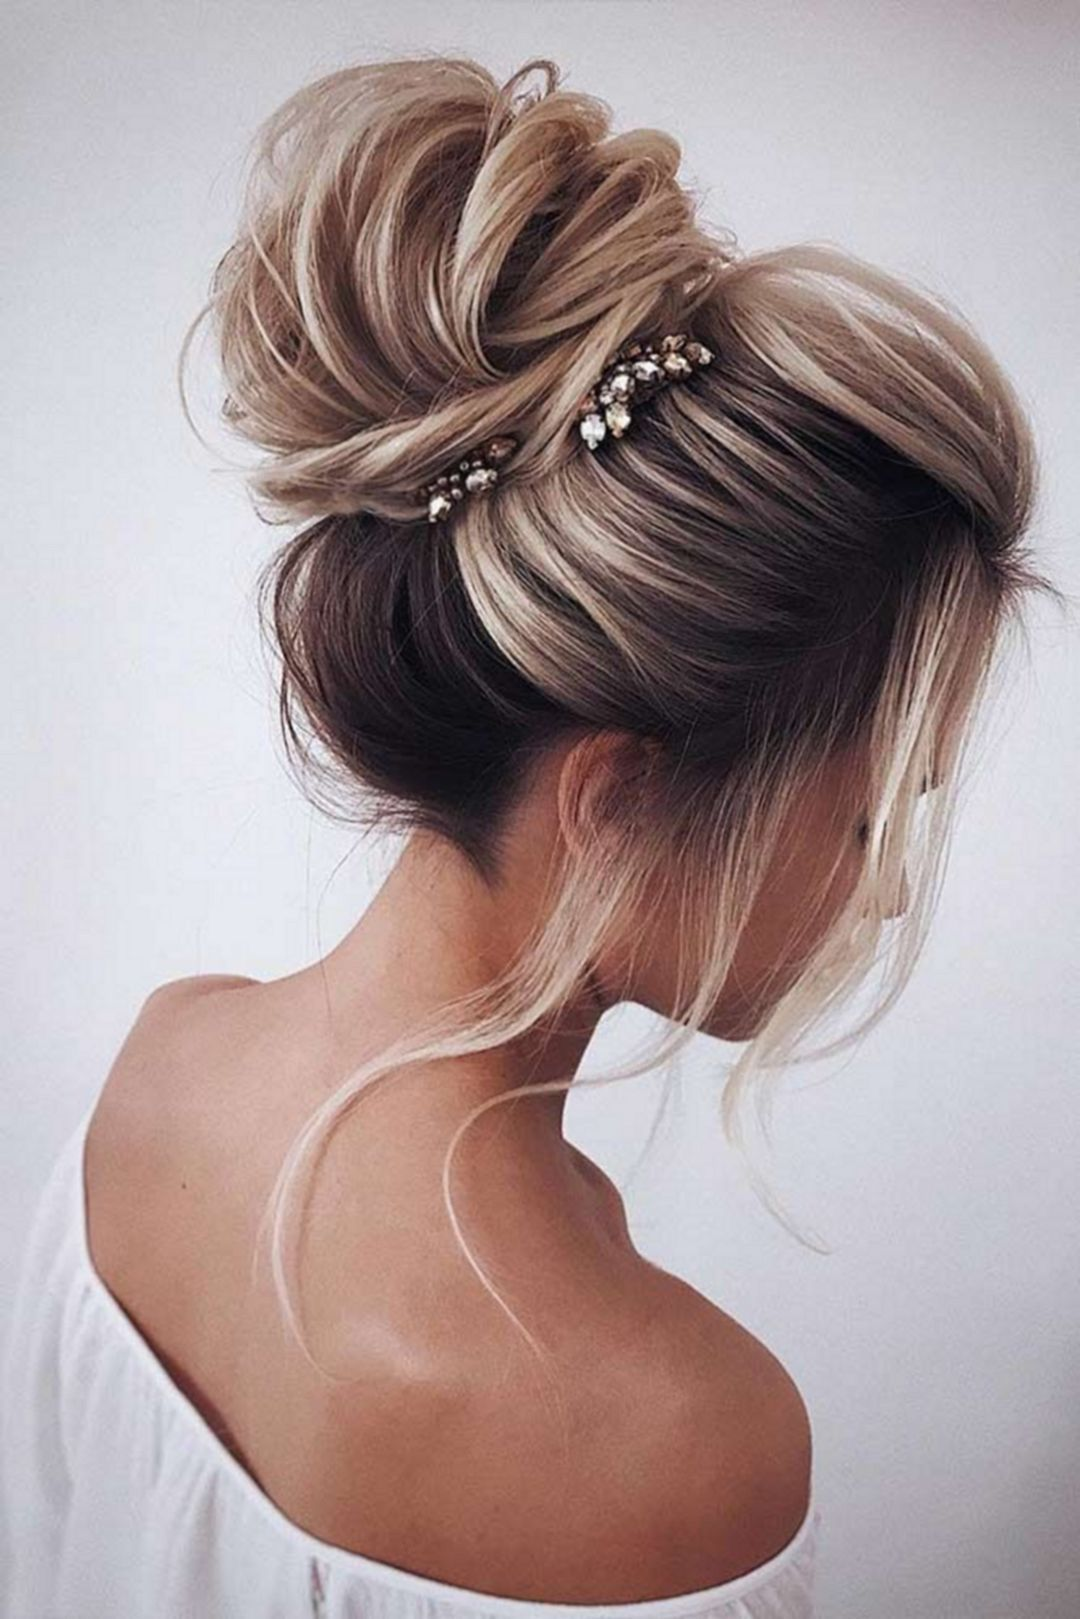 Stunning beautiful long hairstyle ideas for christmas day most